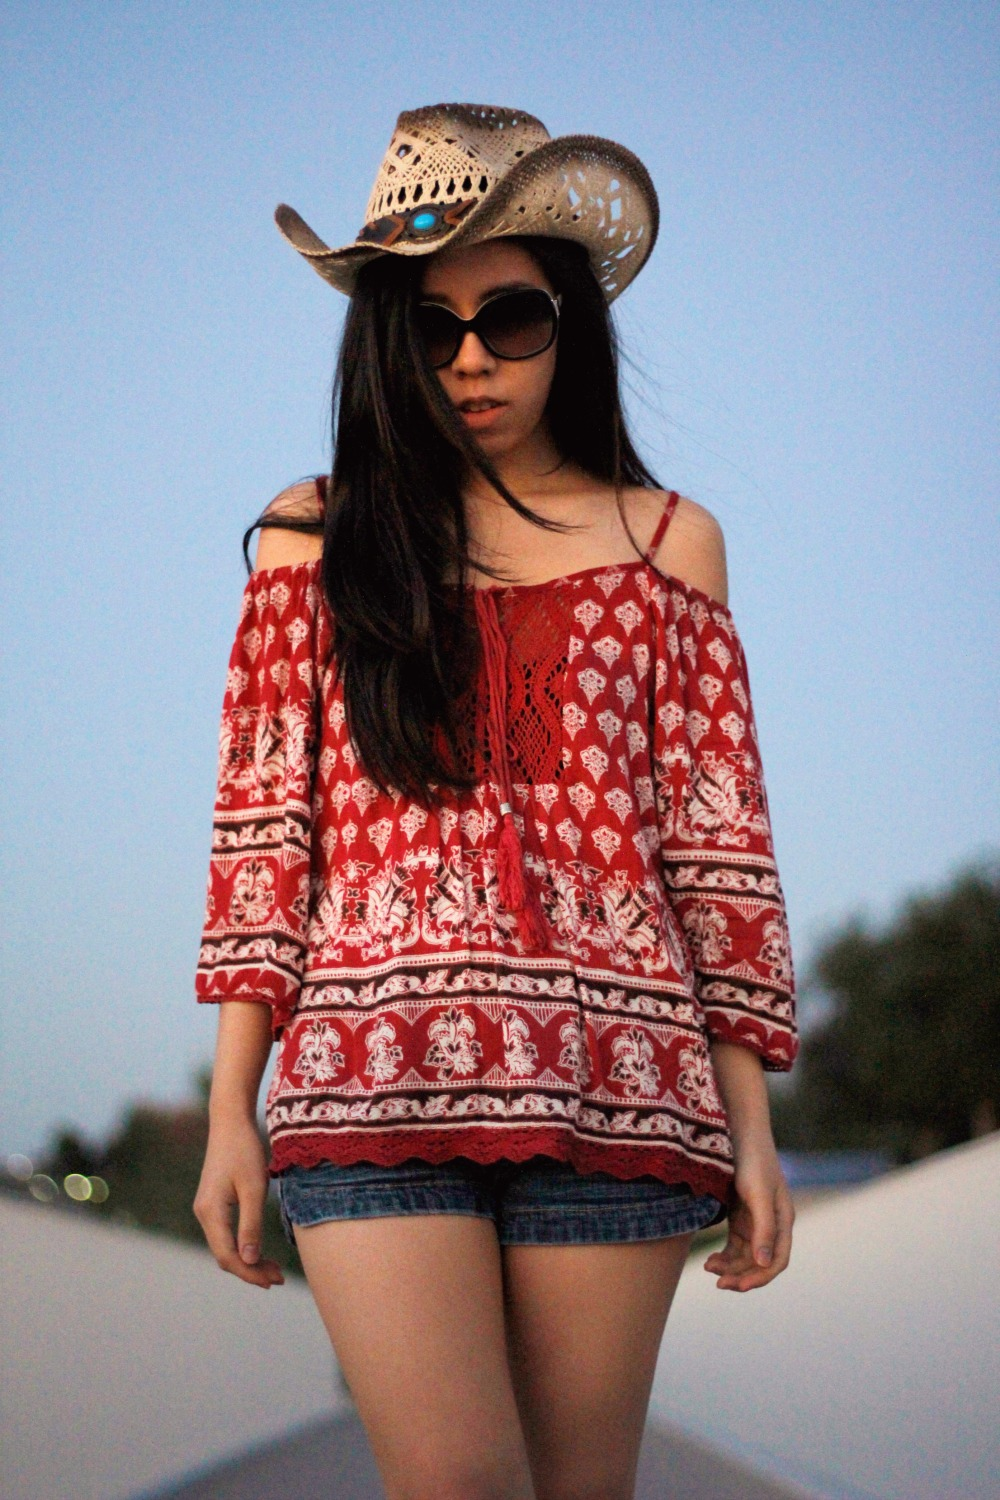 California Bohemian_Adrienne Nguyen_Boho_fashion blogger_san diego_Newport beach_fedora_off the shoulder_summer fashion